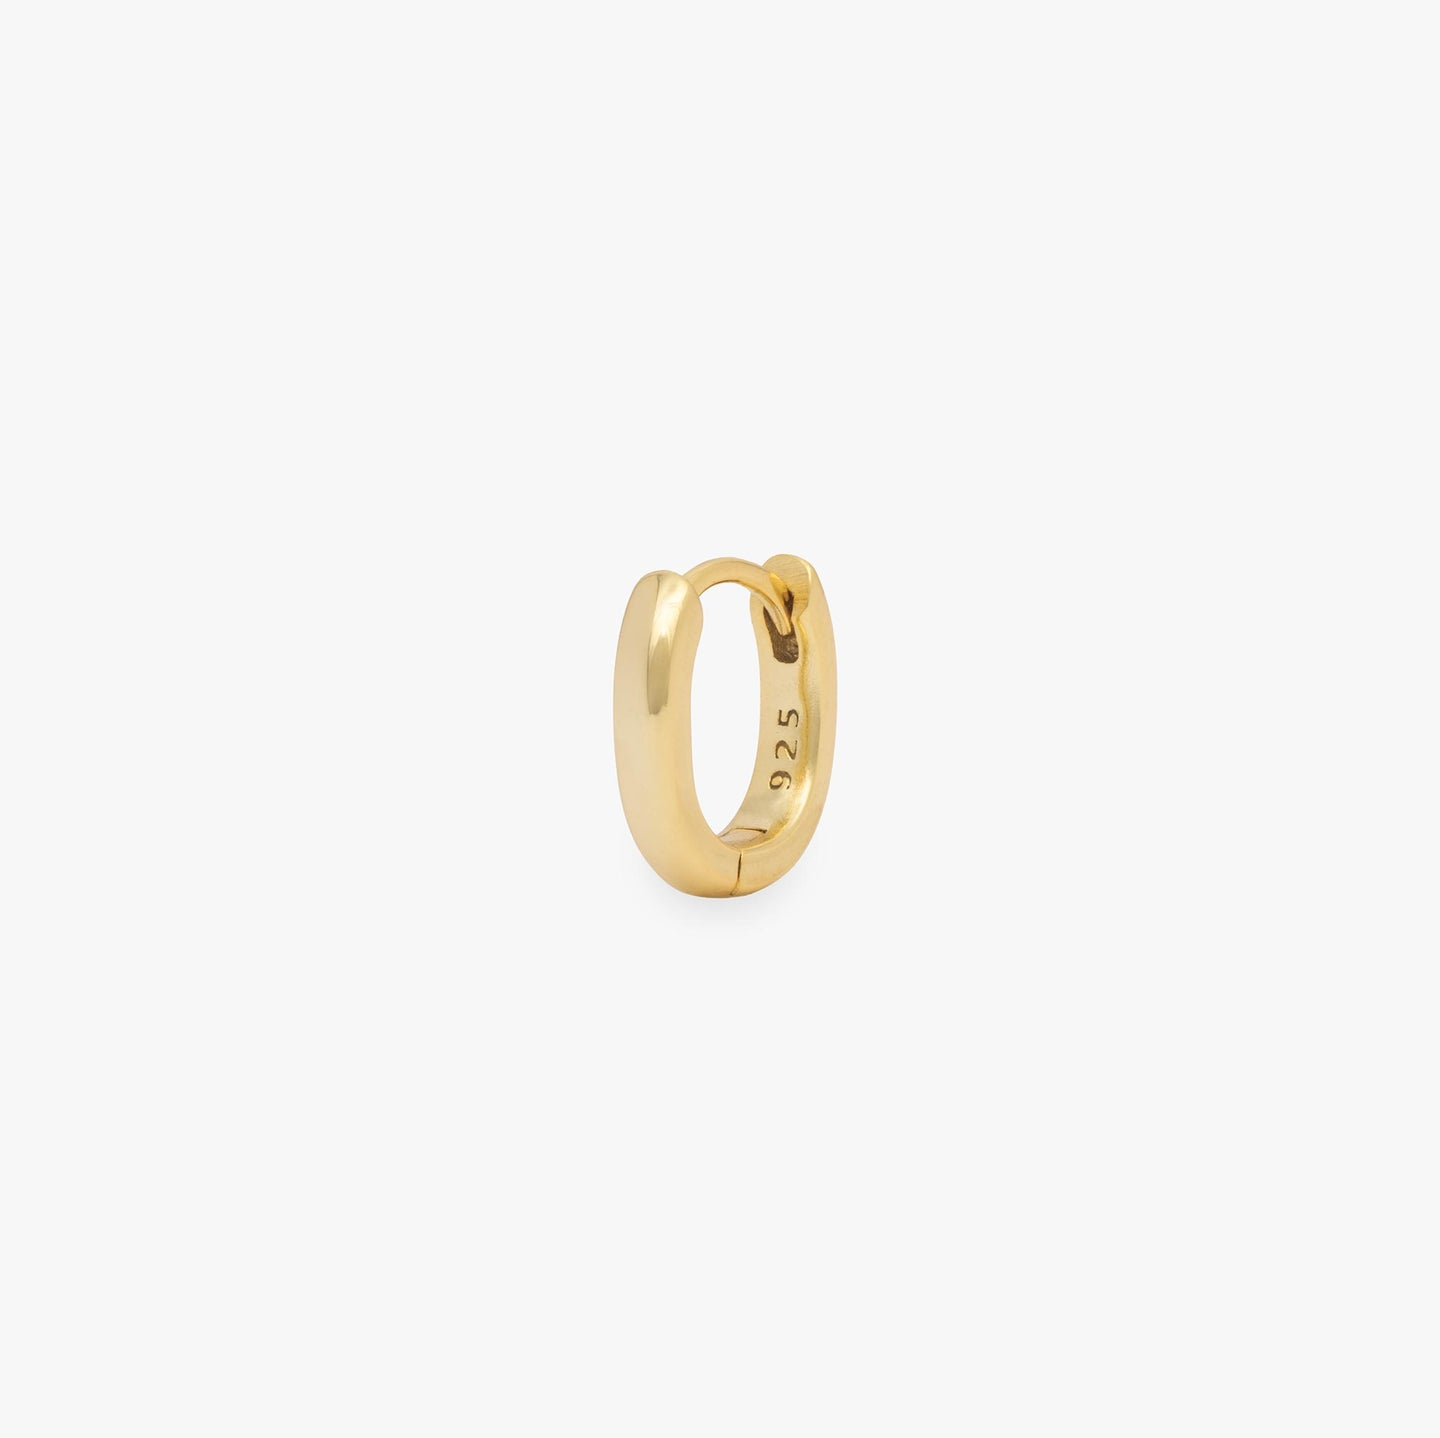 Small hoops in an oval shape. color:gold